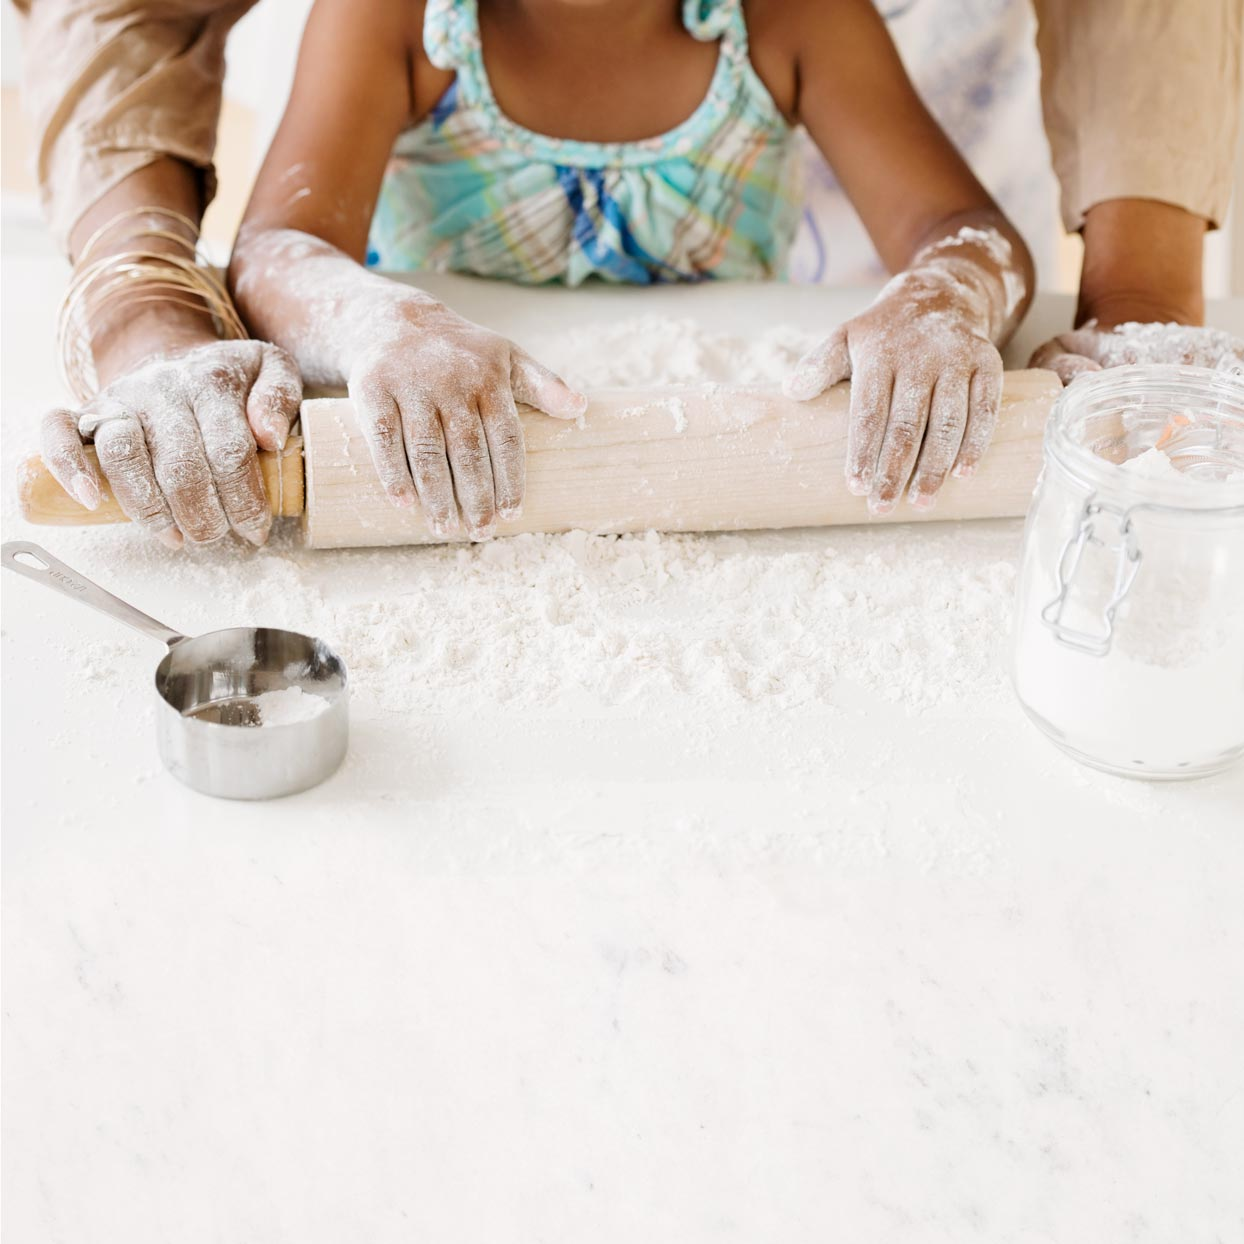 kids rolling out flour